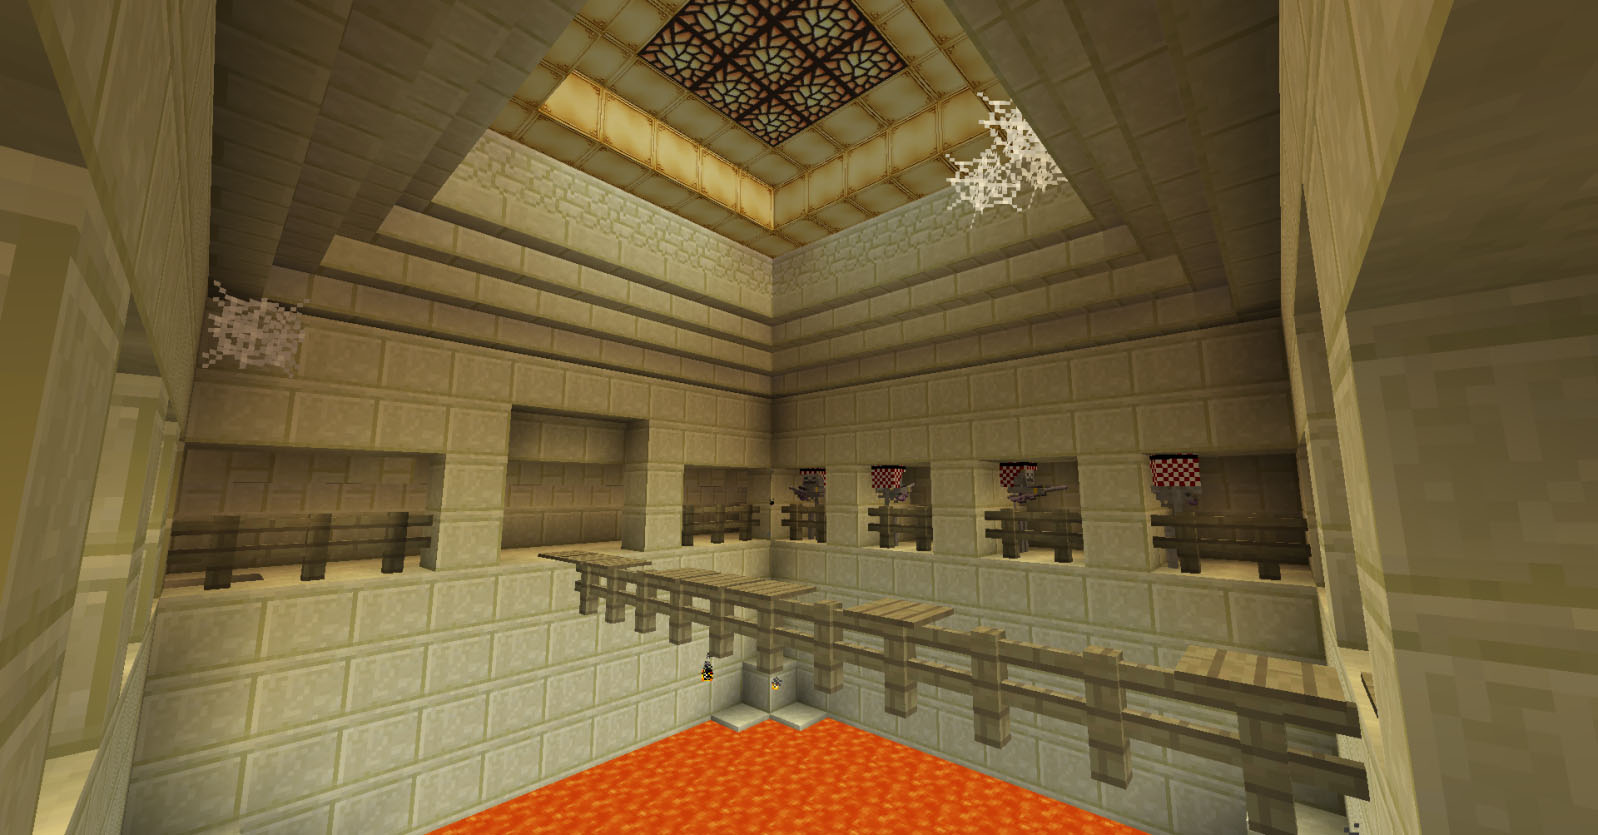 http://img.niceminecraft.net/Map/Lost-in-Pyramid-Map-3.jpg